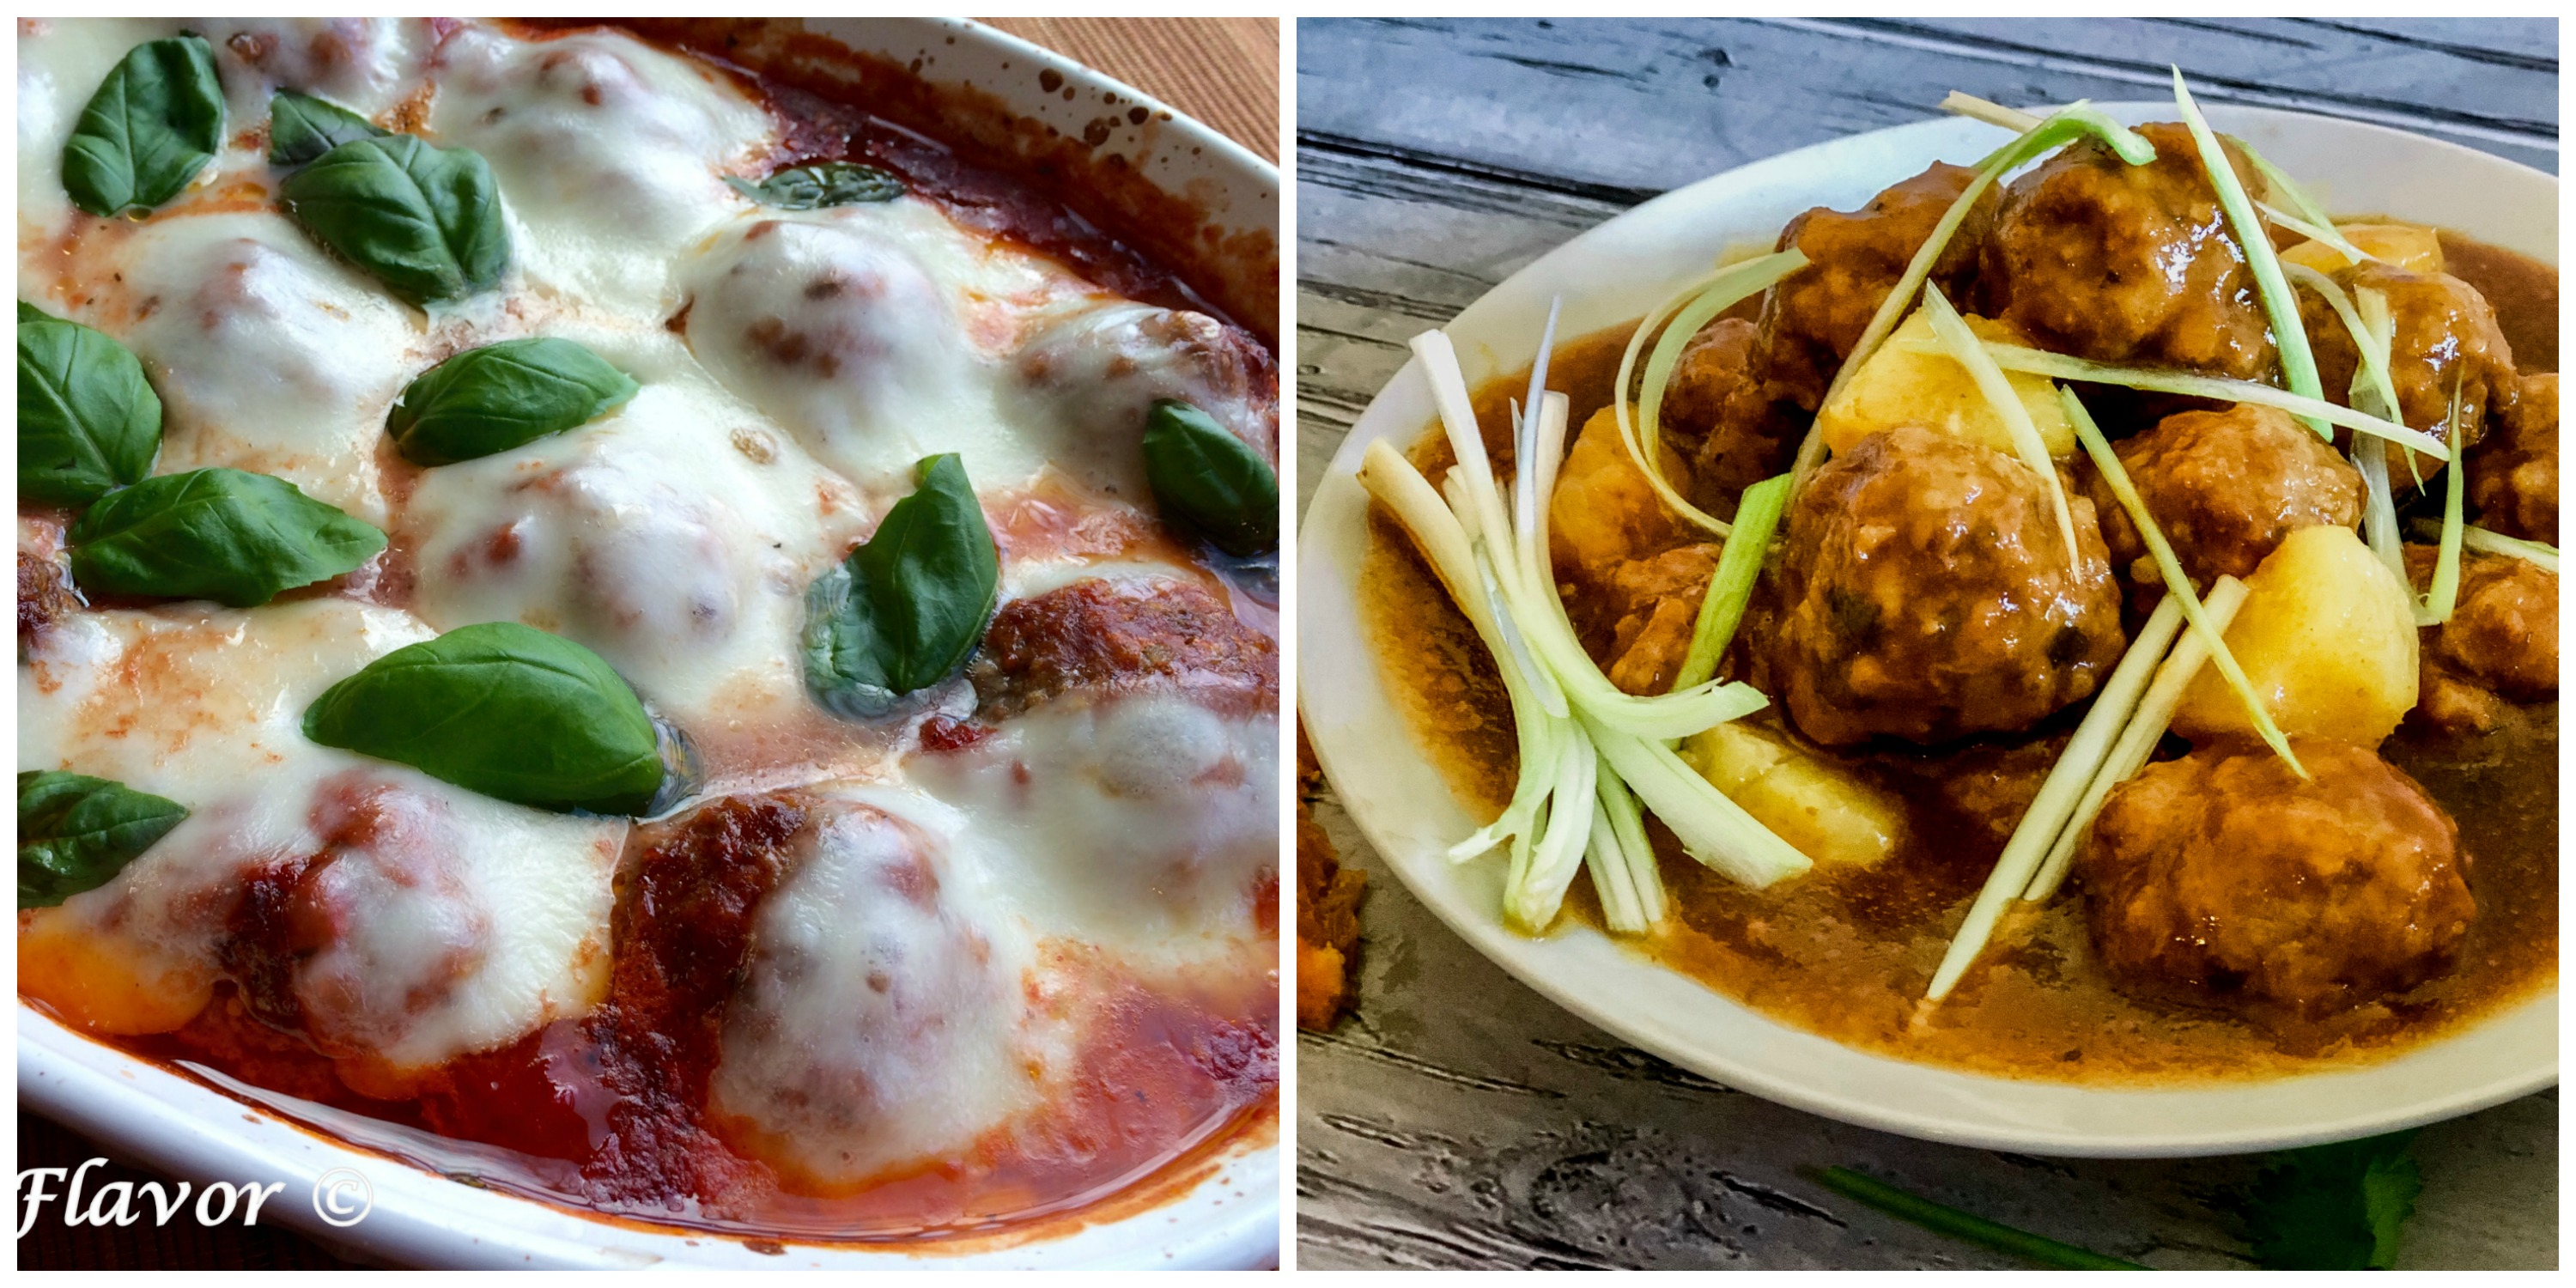 Baked Meatballs and Sweet and Spicy Meatballs